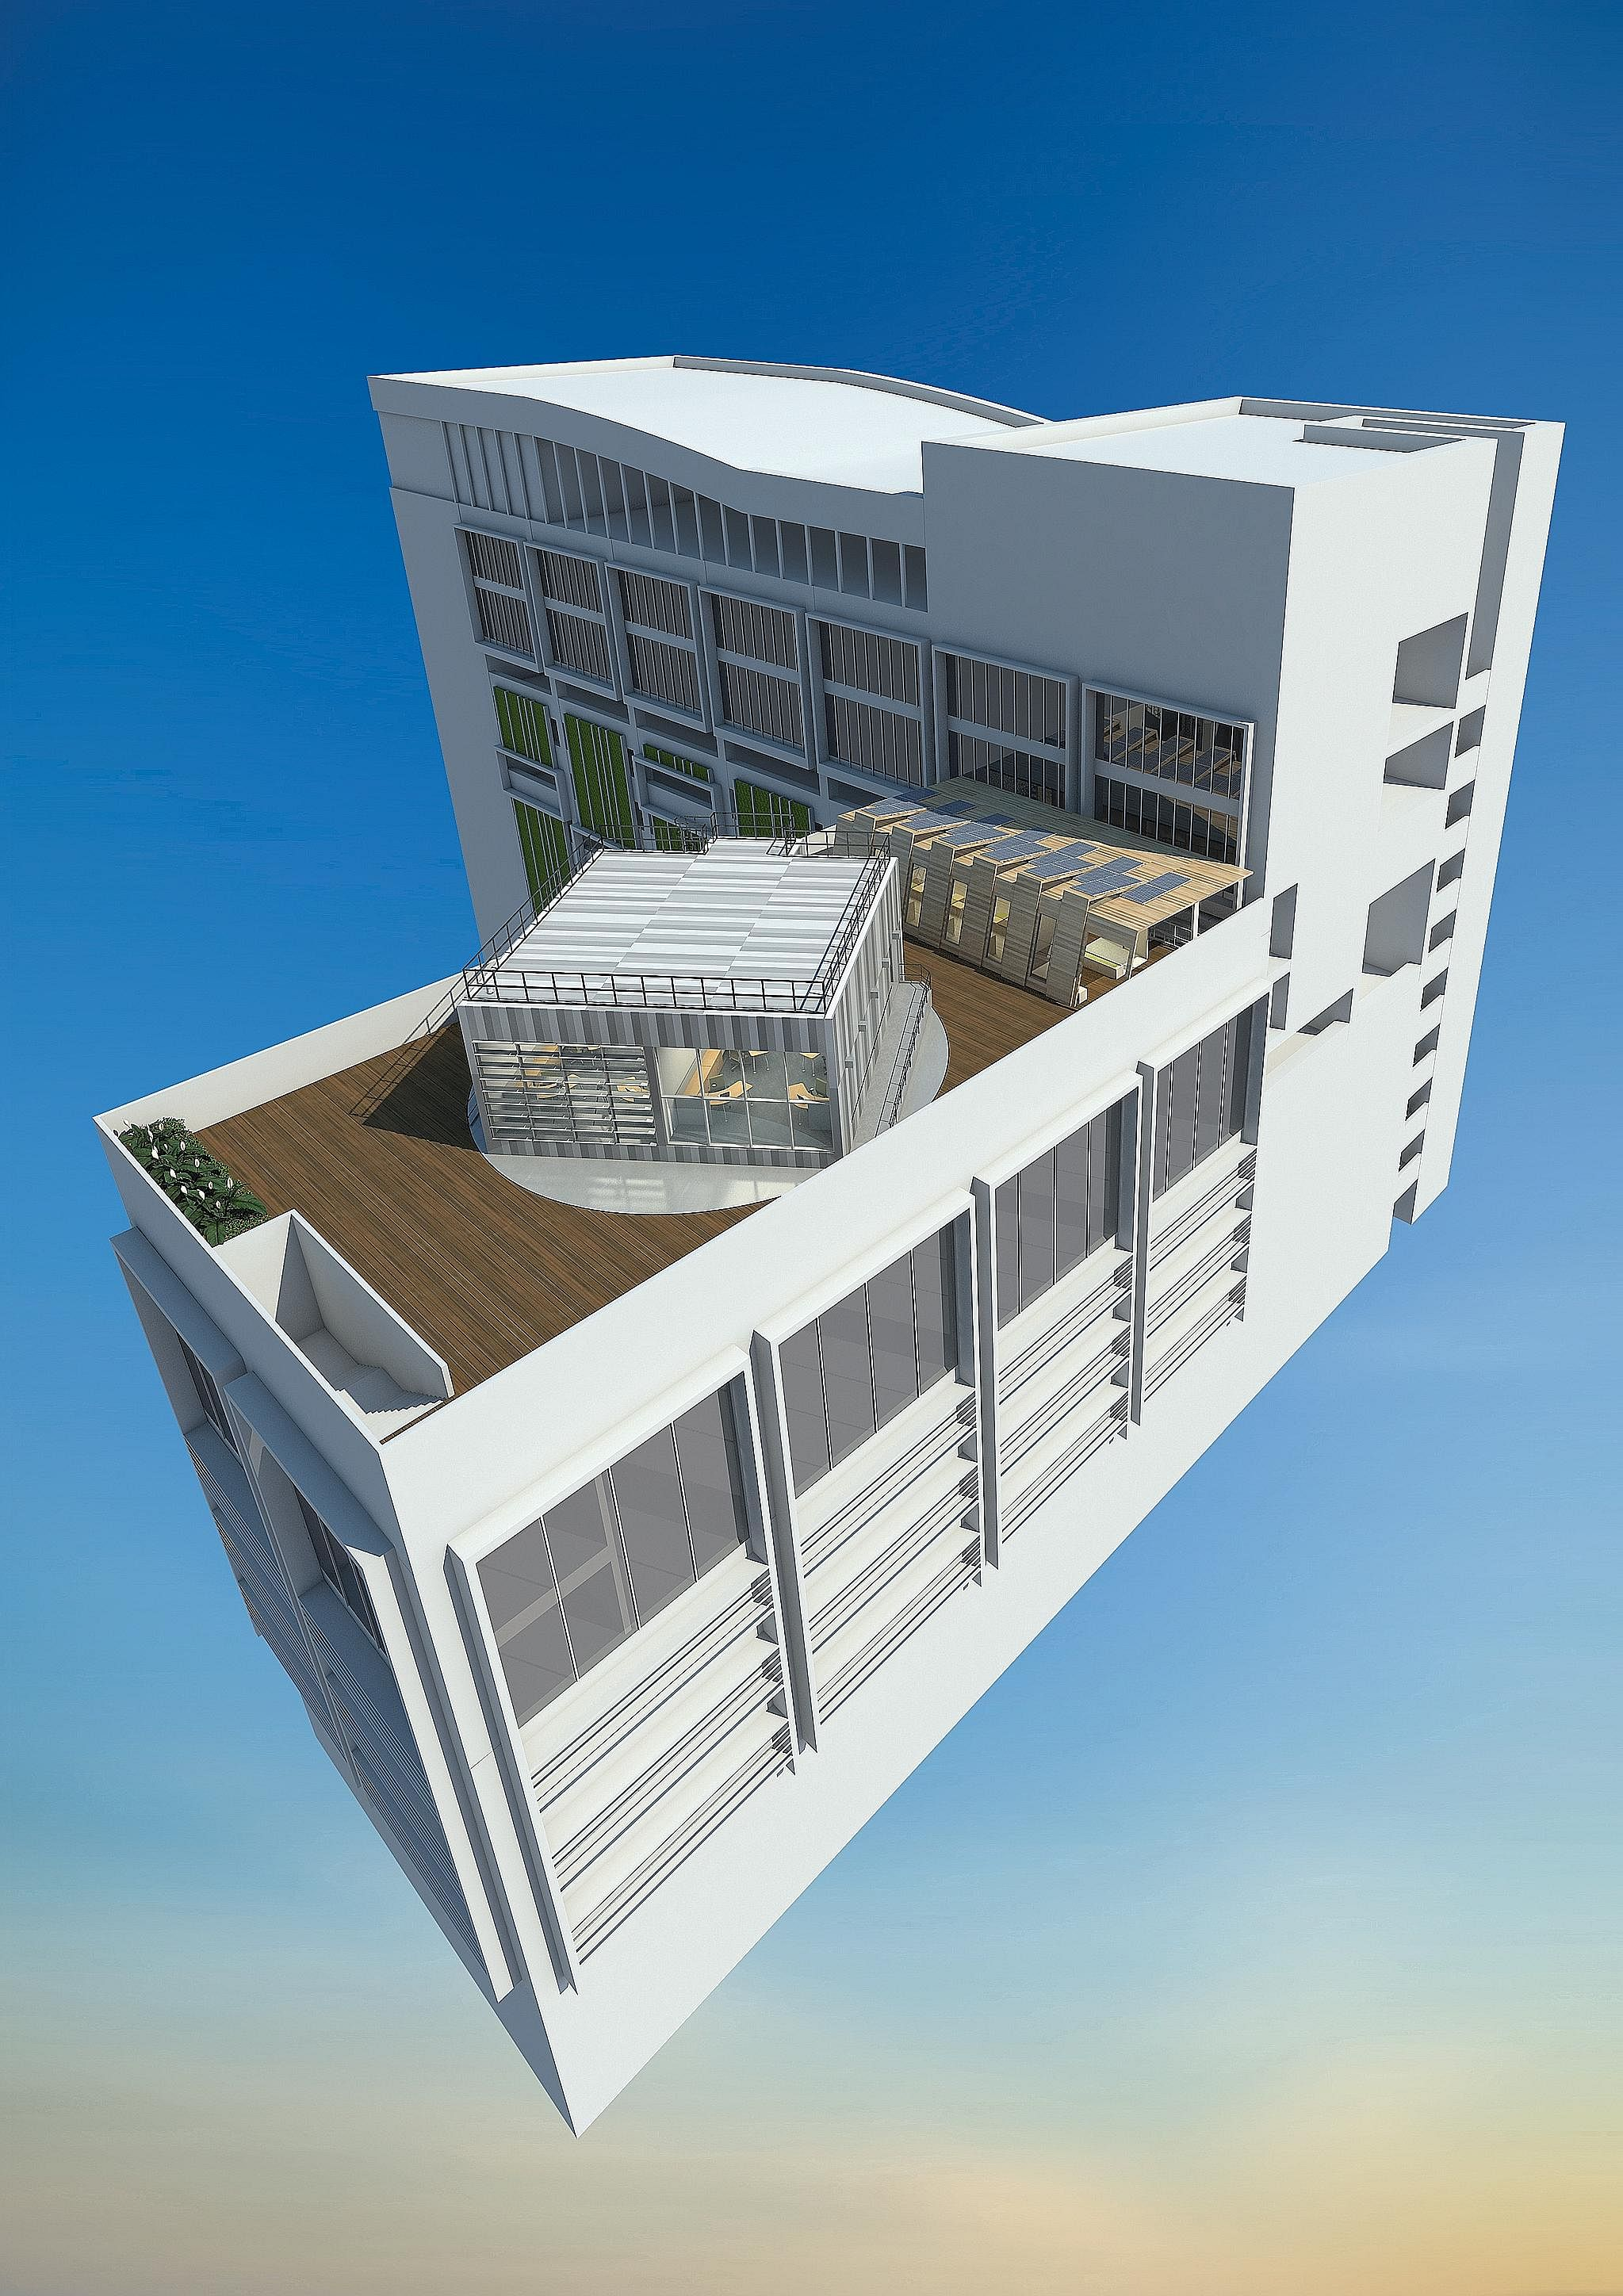 The rotating laboratory will be located on top of one of BCA's buildings at its Braddell Road premises. The BCA Skylab will be where researchers can test and develop green technology and materials.